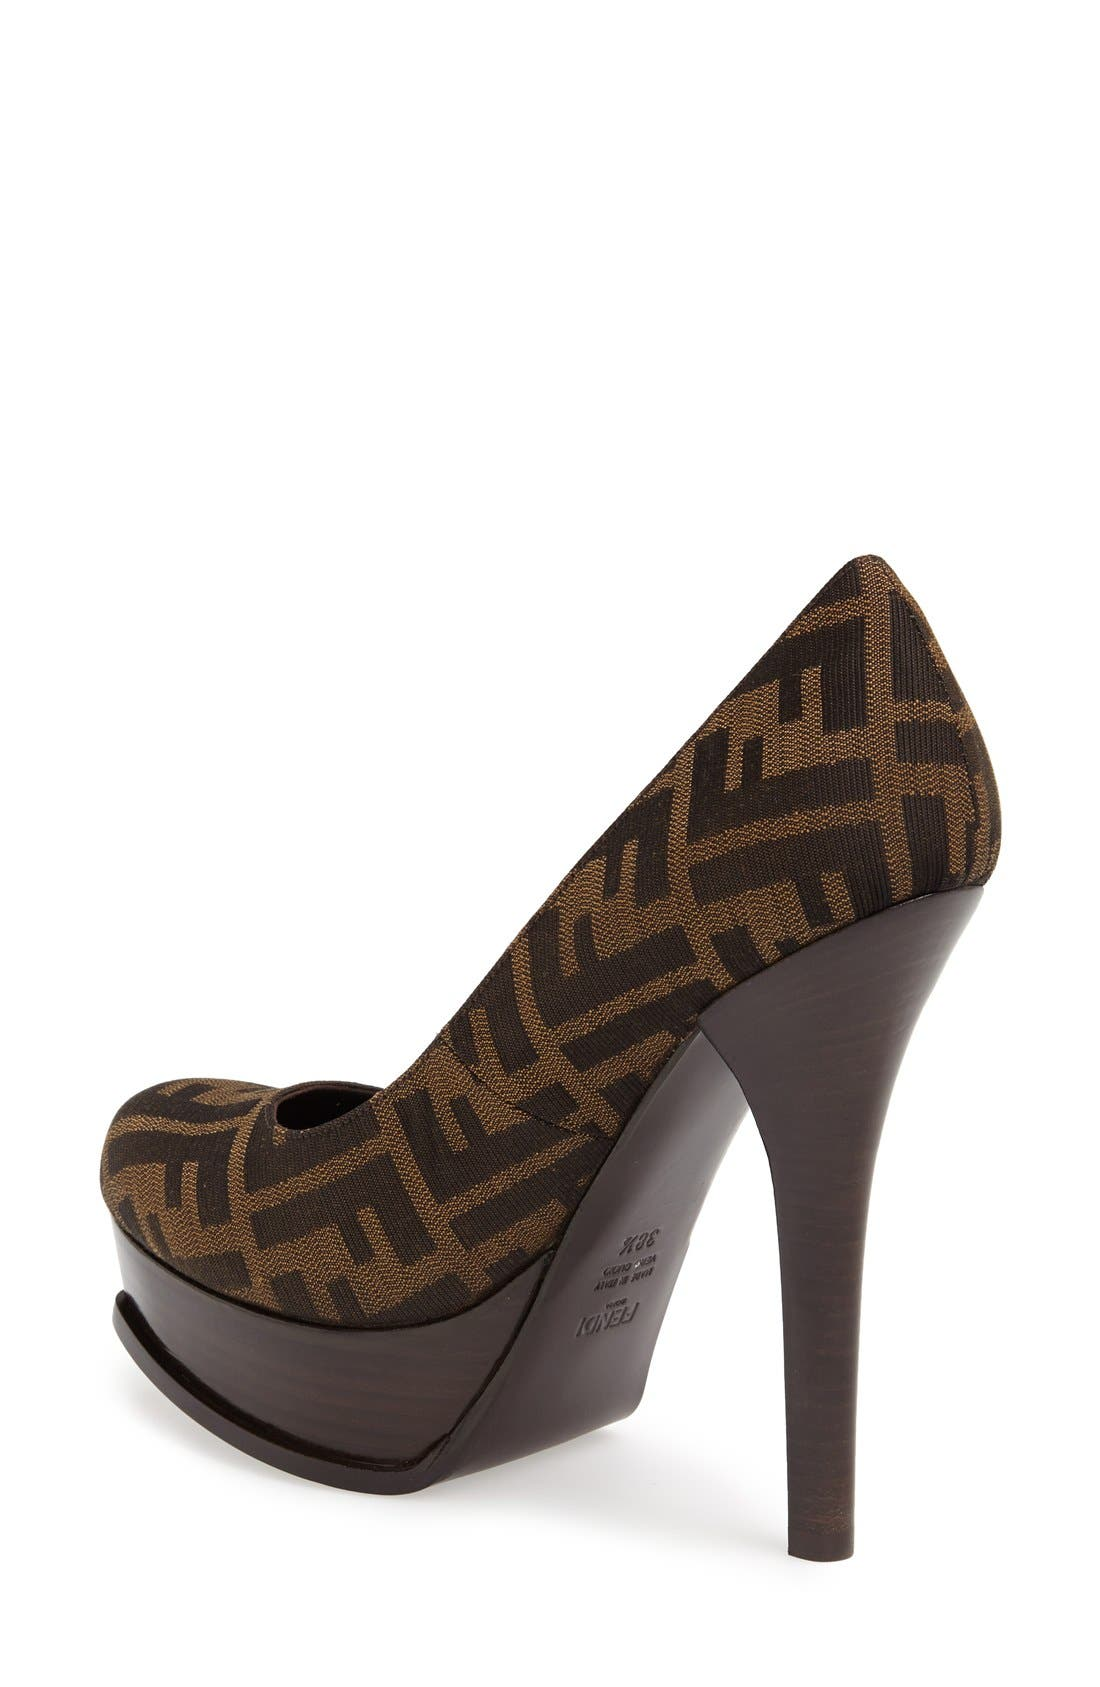 Alternate Image 2  - Fendi 'Fendista Zucca' Platform Pump